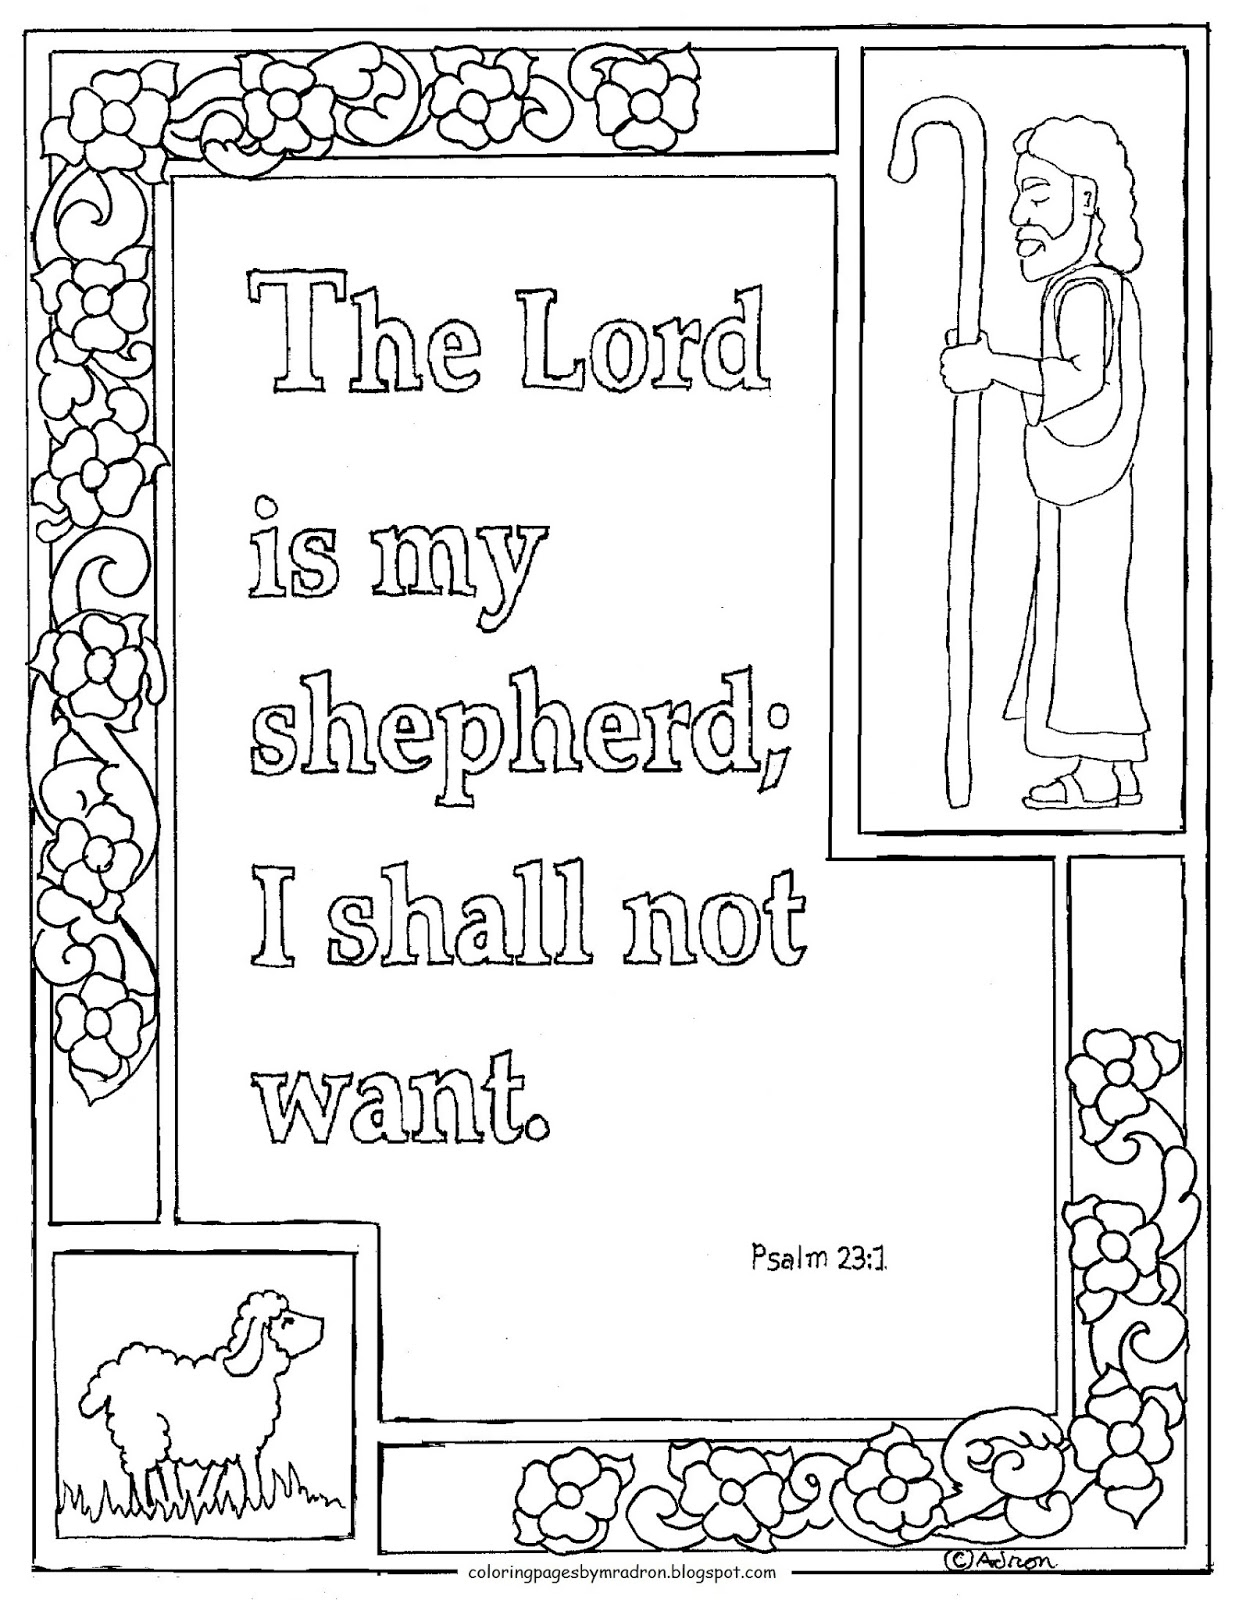 Coloring Pages for Kids by Mr Adron Printable Psalm 231 The